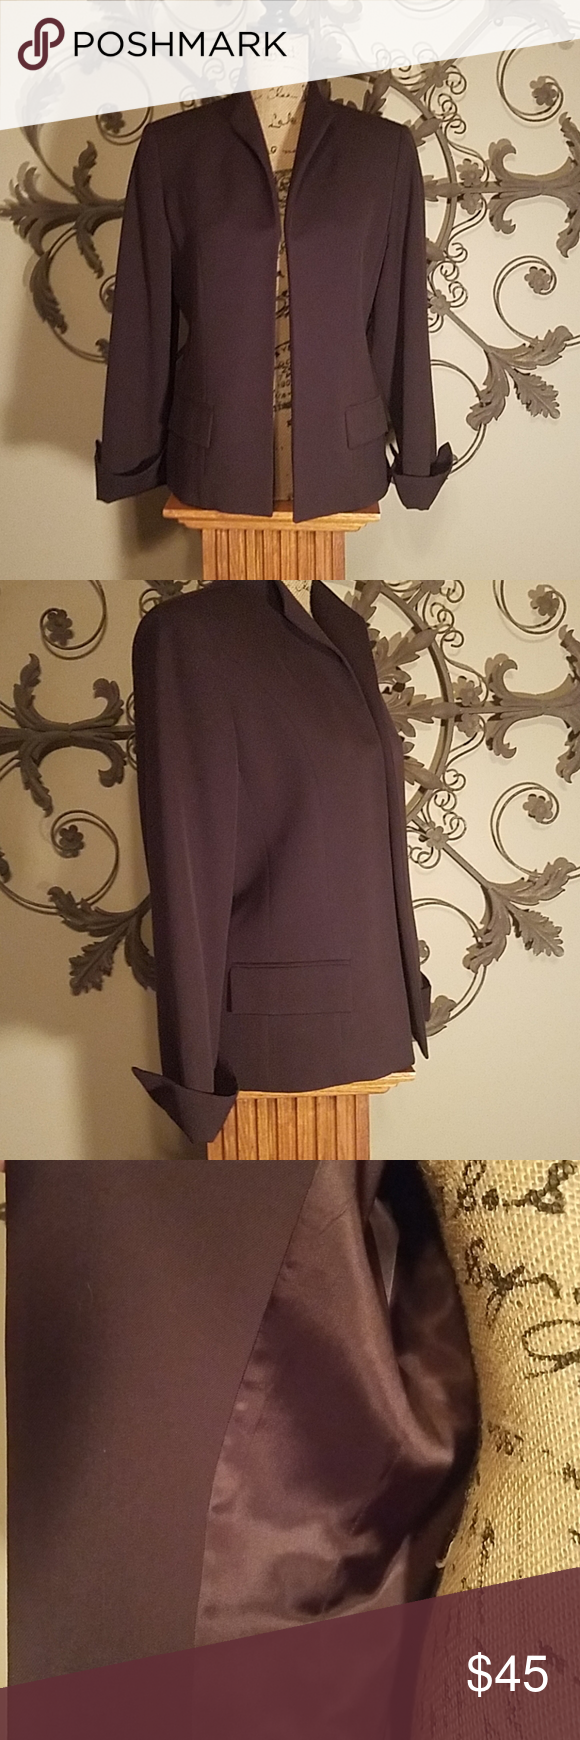 Austin Reed Wool Blazer Beauty 23 1 2 Long 3 4 Sleeves And Cuffs Fully Lined Made In The Usa Deep Eggplant Color Wool Blazer Clothes Design Jackets For Women